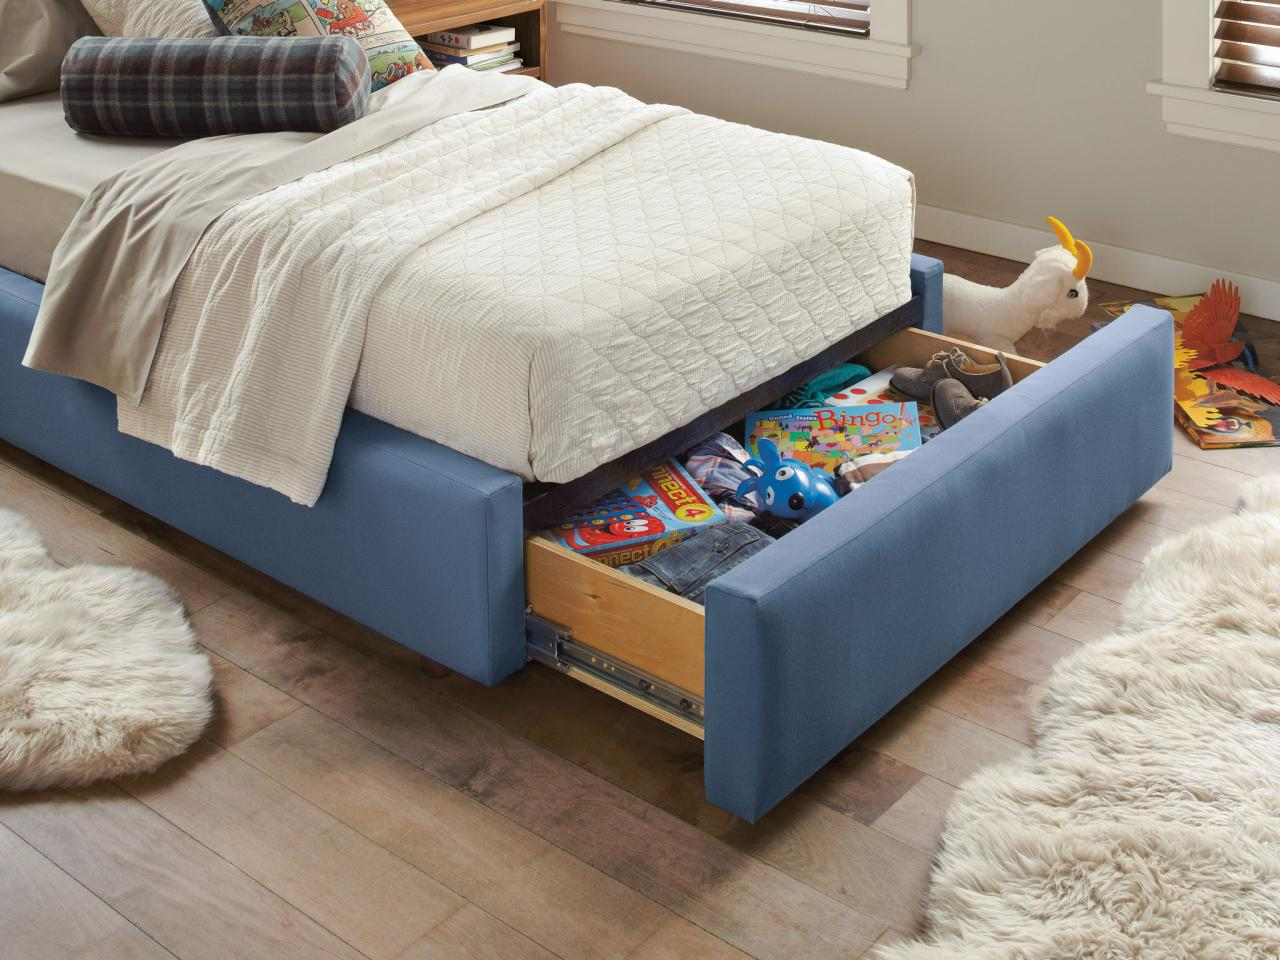 King Single Bed With Drawers 10 Beds That Look Good And Have Killer Storage Too Hgtv S